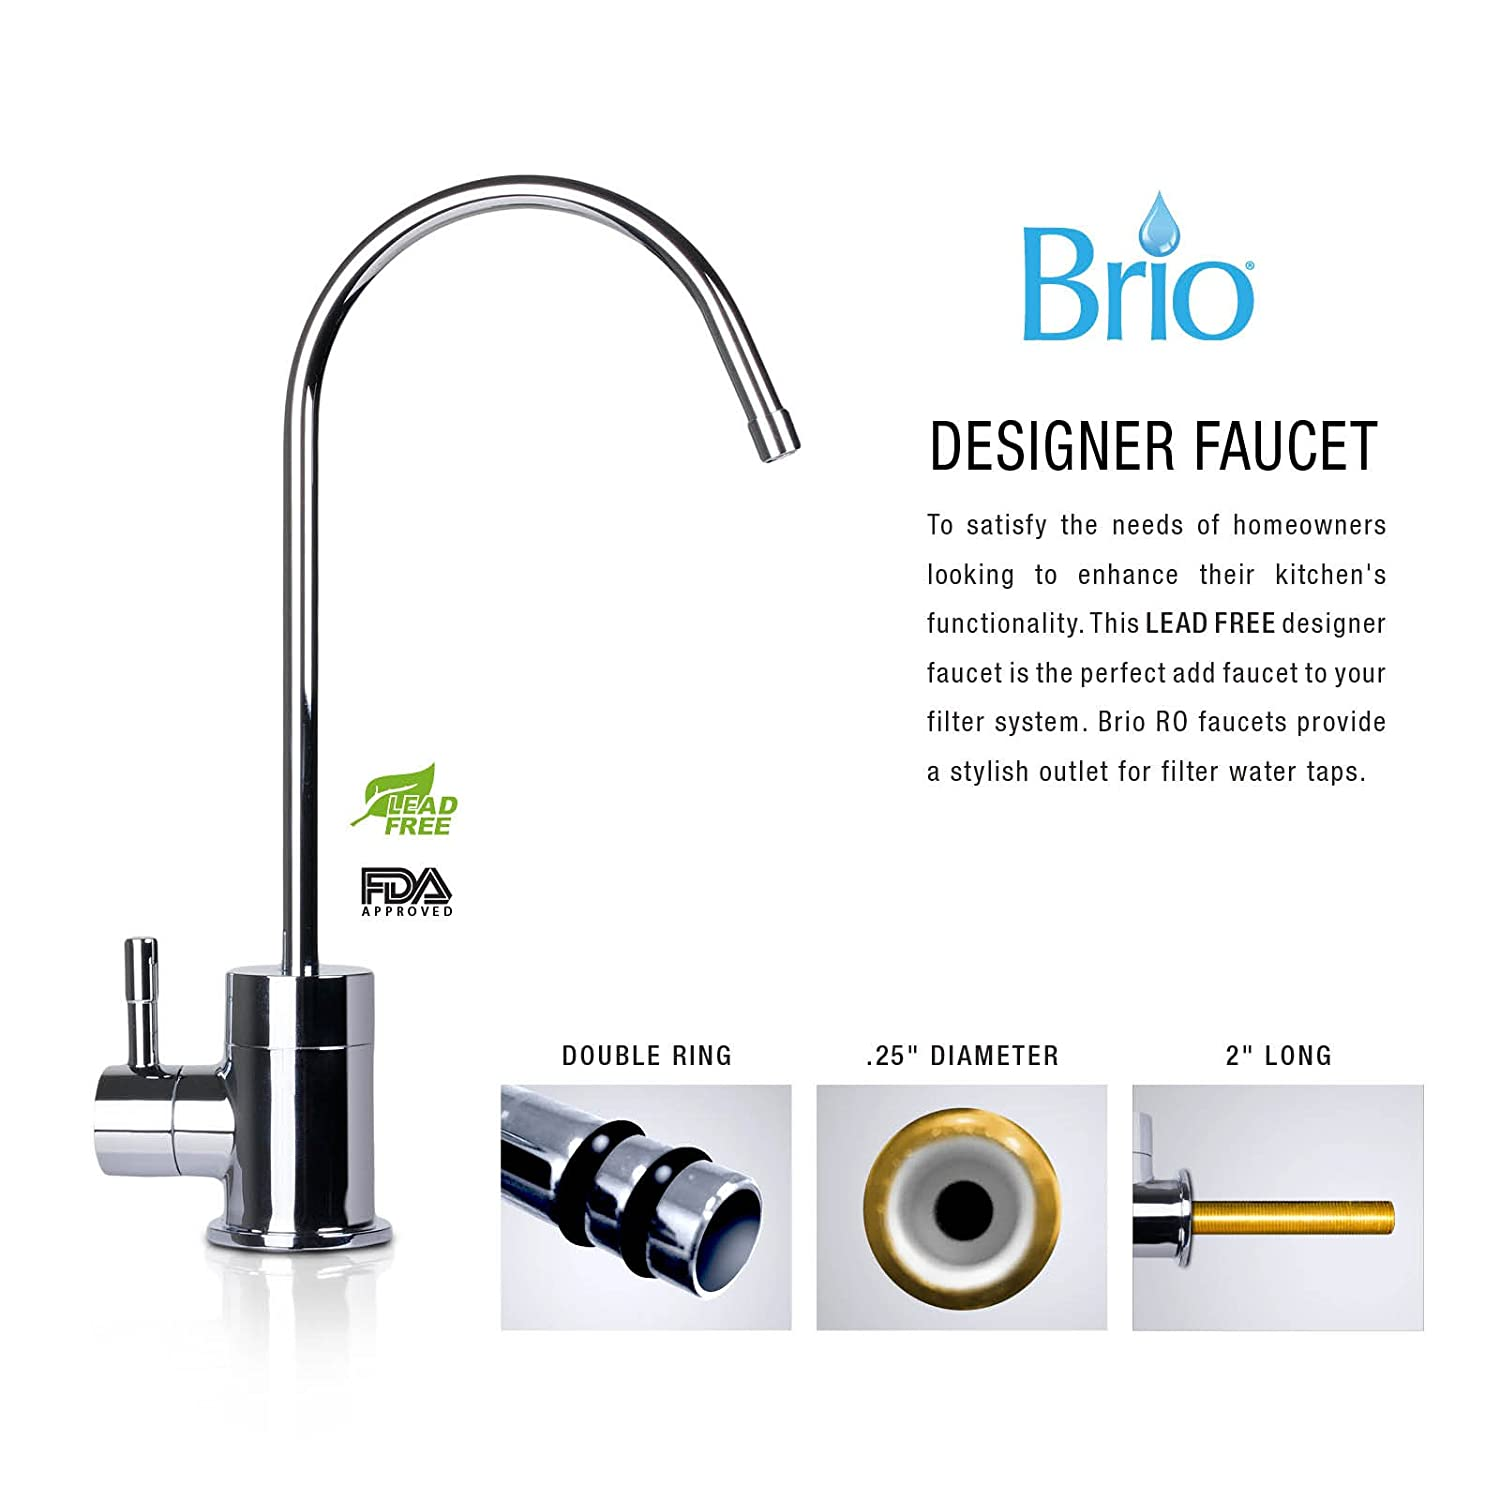 pur picture waterfiltration faucet faucets filter water reviews filters